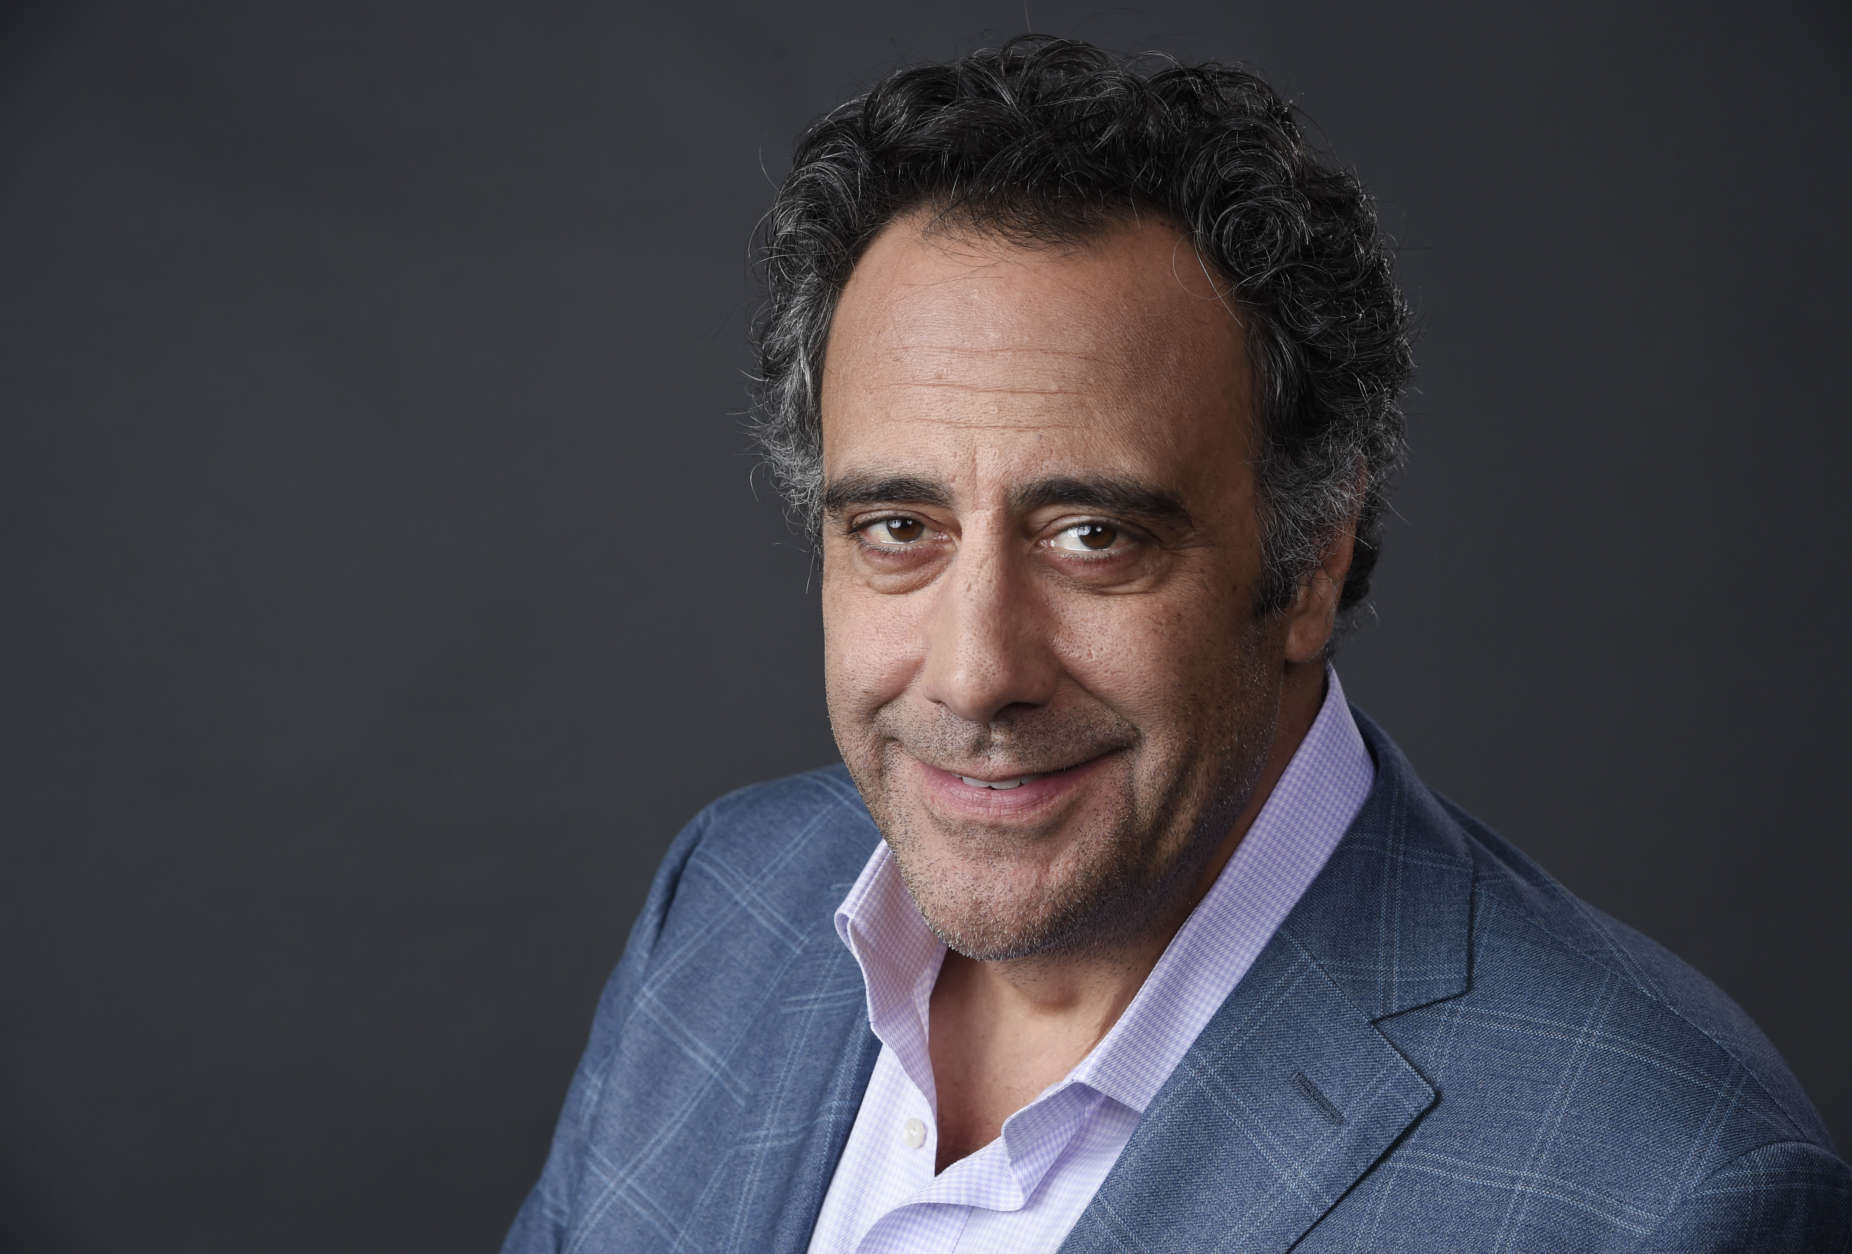 'Everybody Loves Raymond' star Brad Garrett cracks up MGM ...Brad Garrett